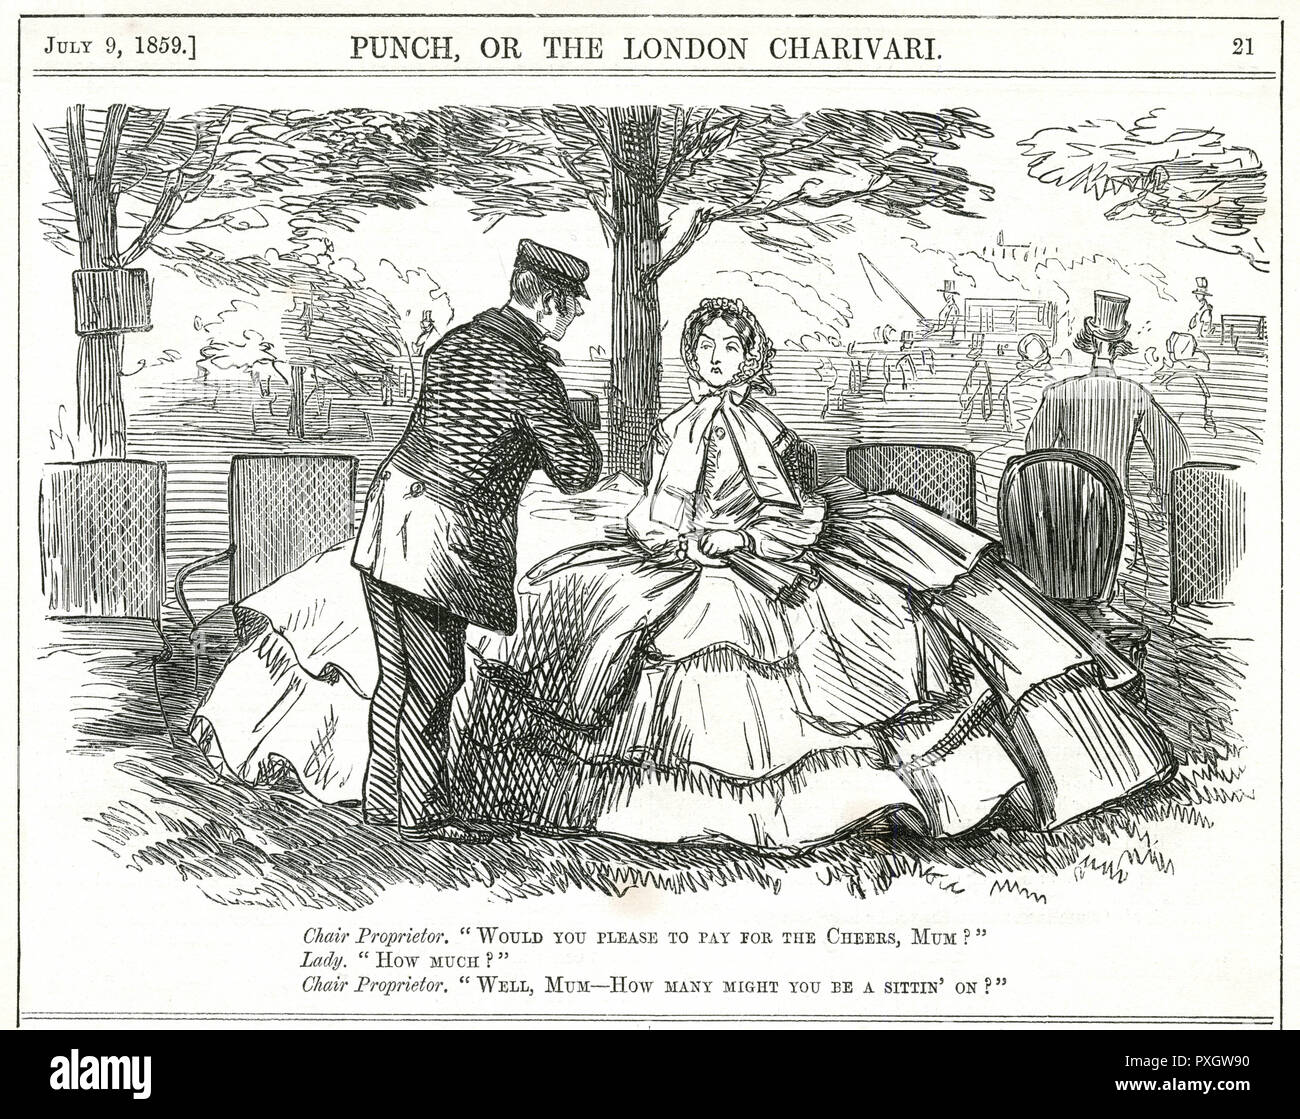 A disgruntled looking woman wearing an enormous crinoline is asked by the chair proprietor how many chairs she is sitting on so that he can calculate her bill.     Date: 1859 - Stock Image